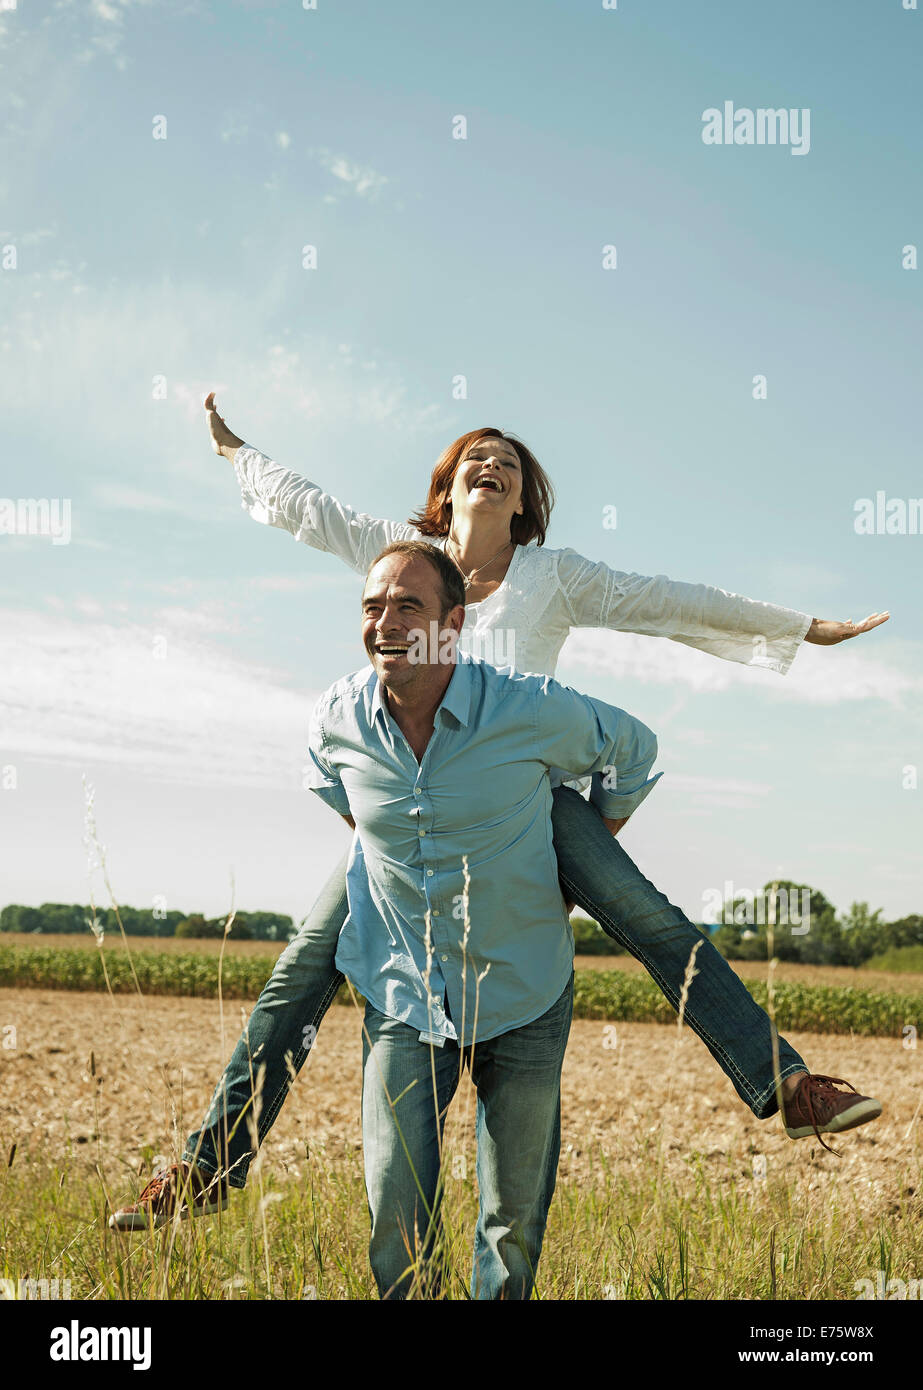 Man giving a woman a piggyback ride, happy couple oudoors, Baden-Württemberg, Germany - Stock Image